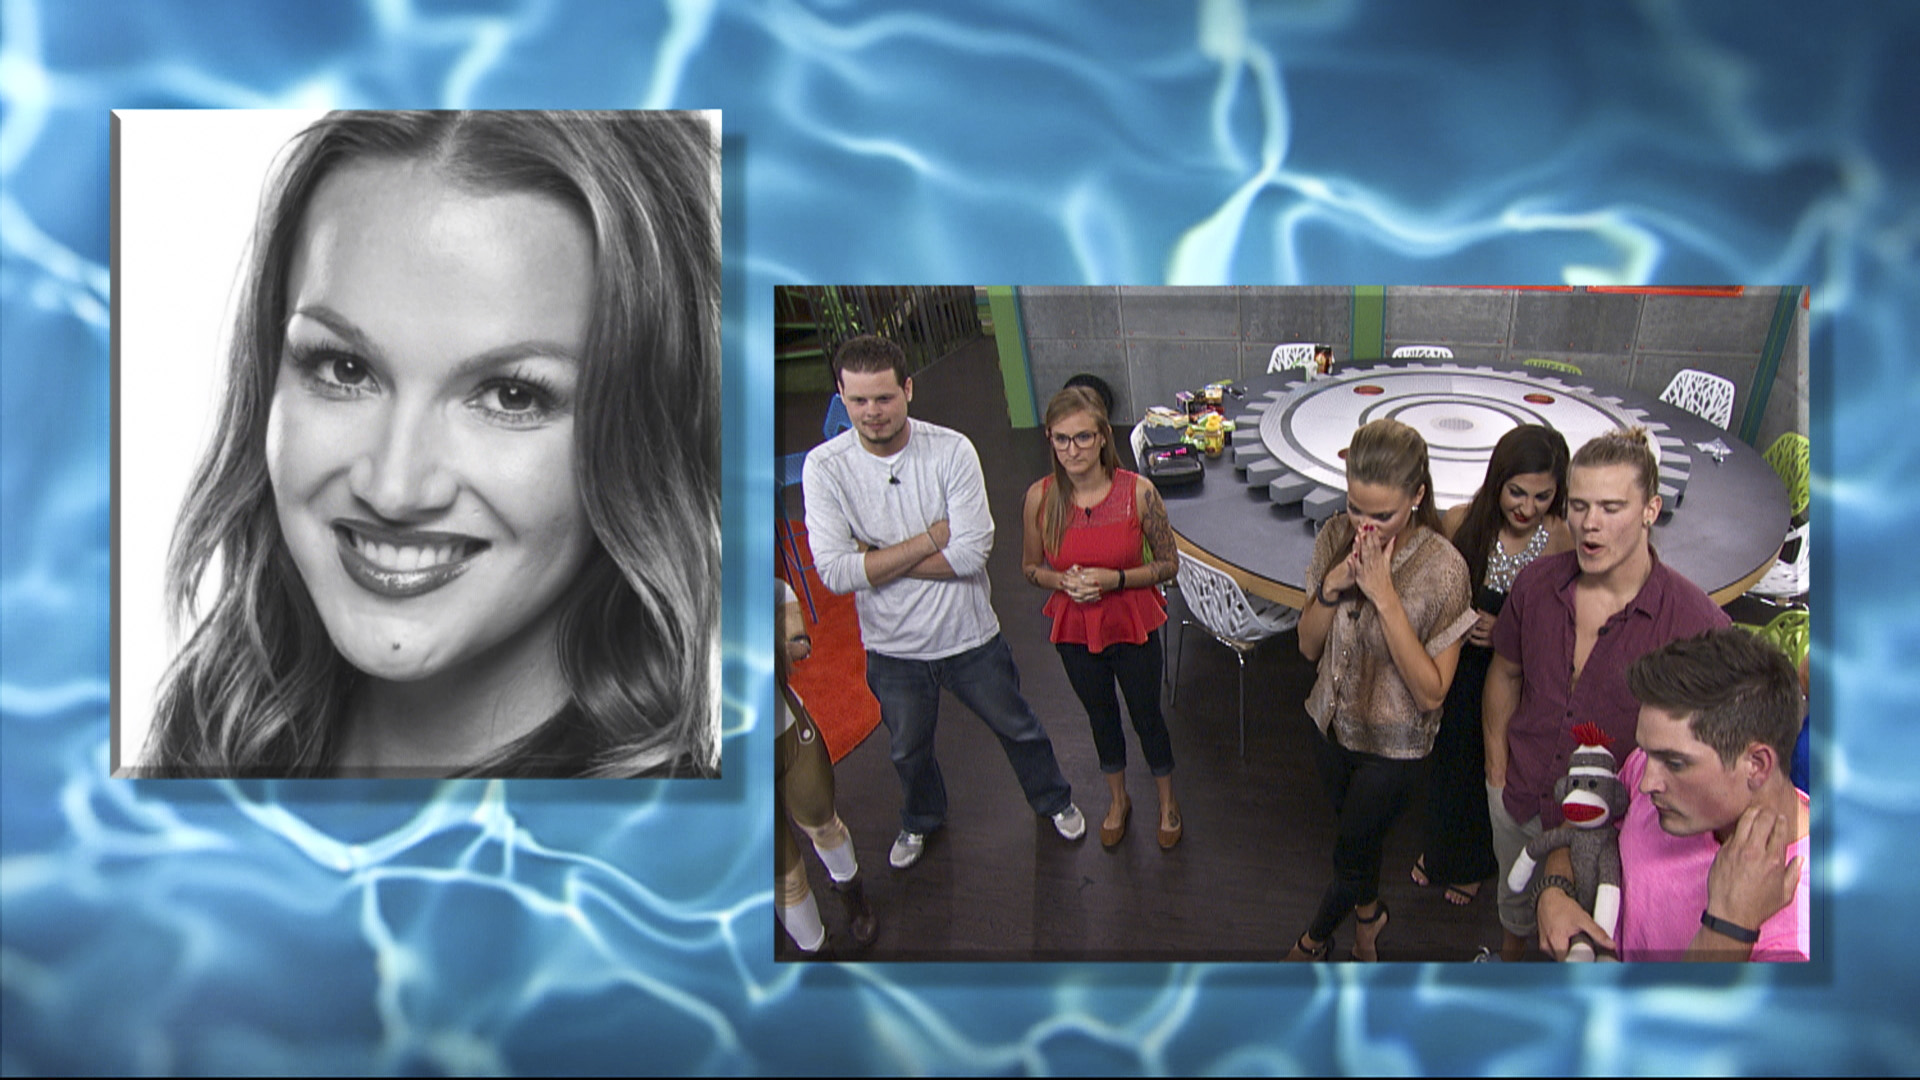 Brittany is evicted